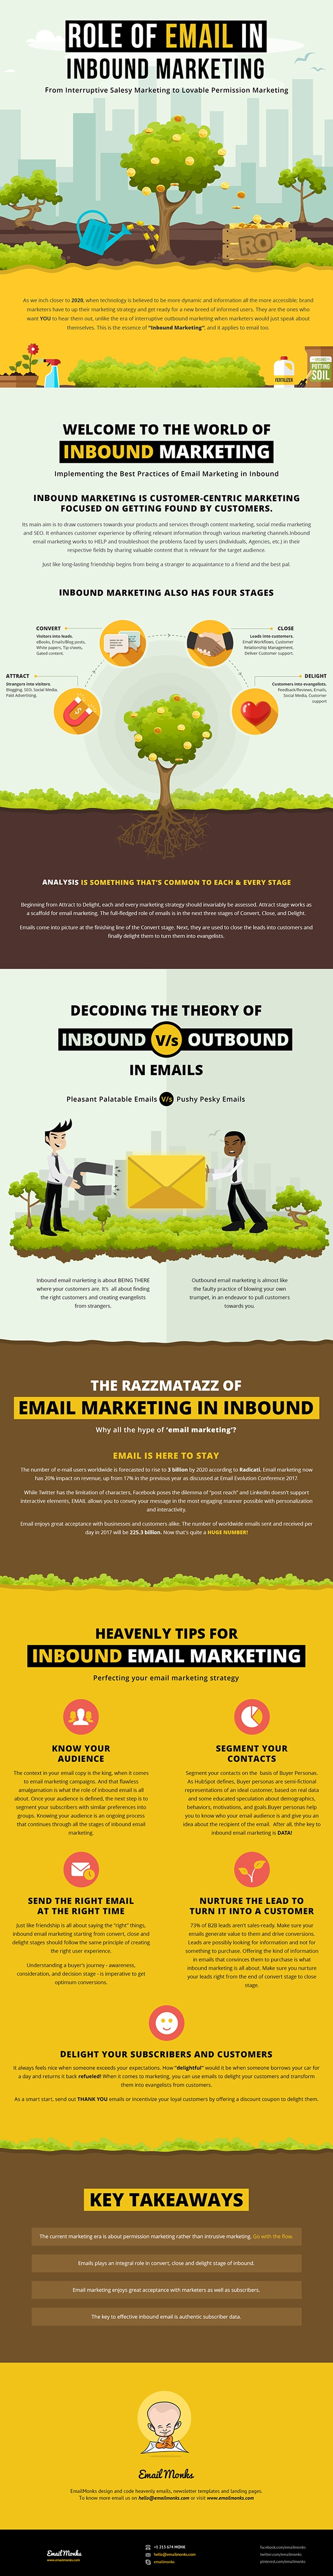 How Email Marketing Done the Inbound Way Fetches Great Results! [Infographic]